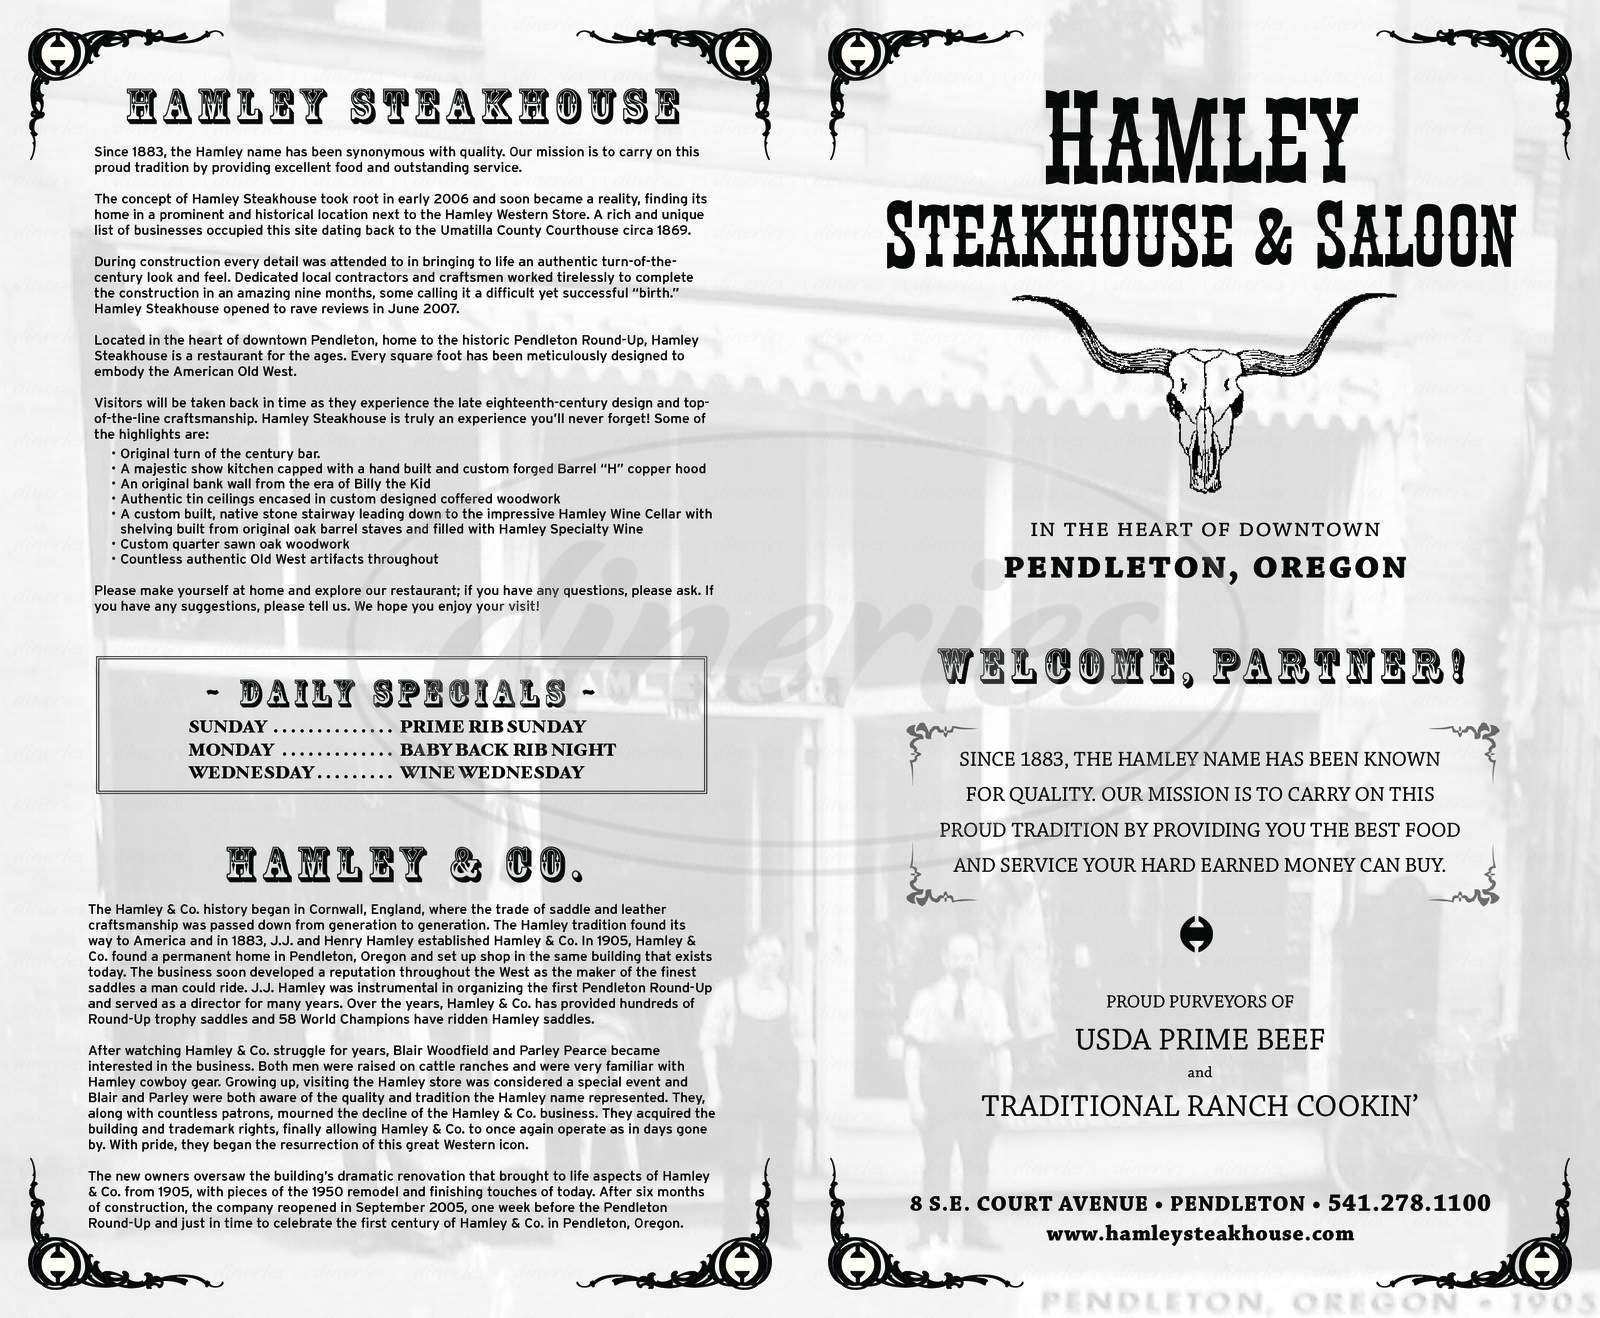 menu for Hamley Steakhouse